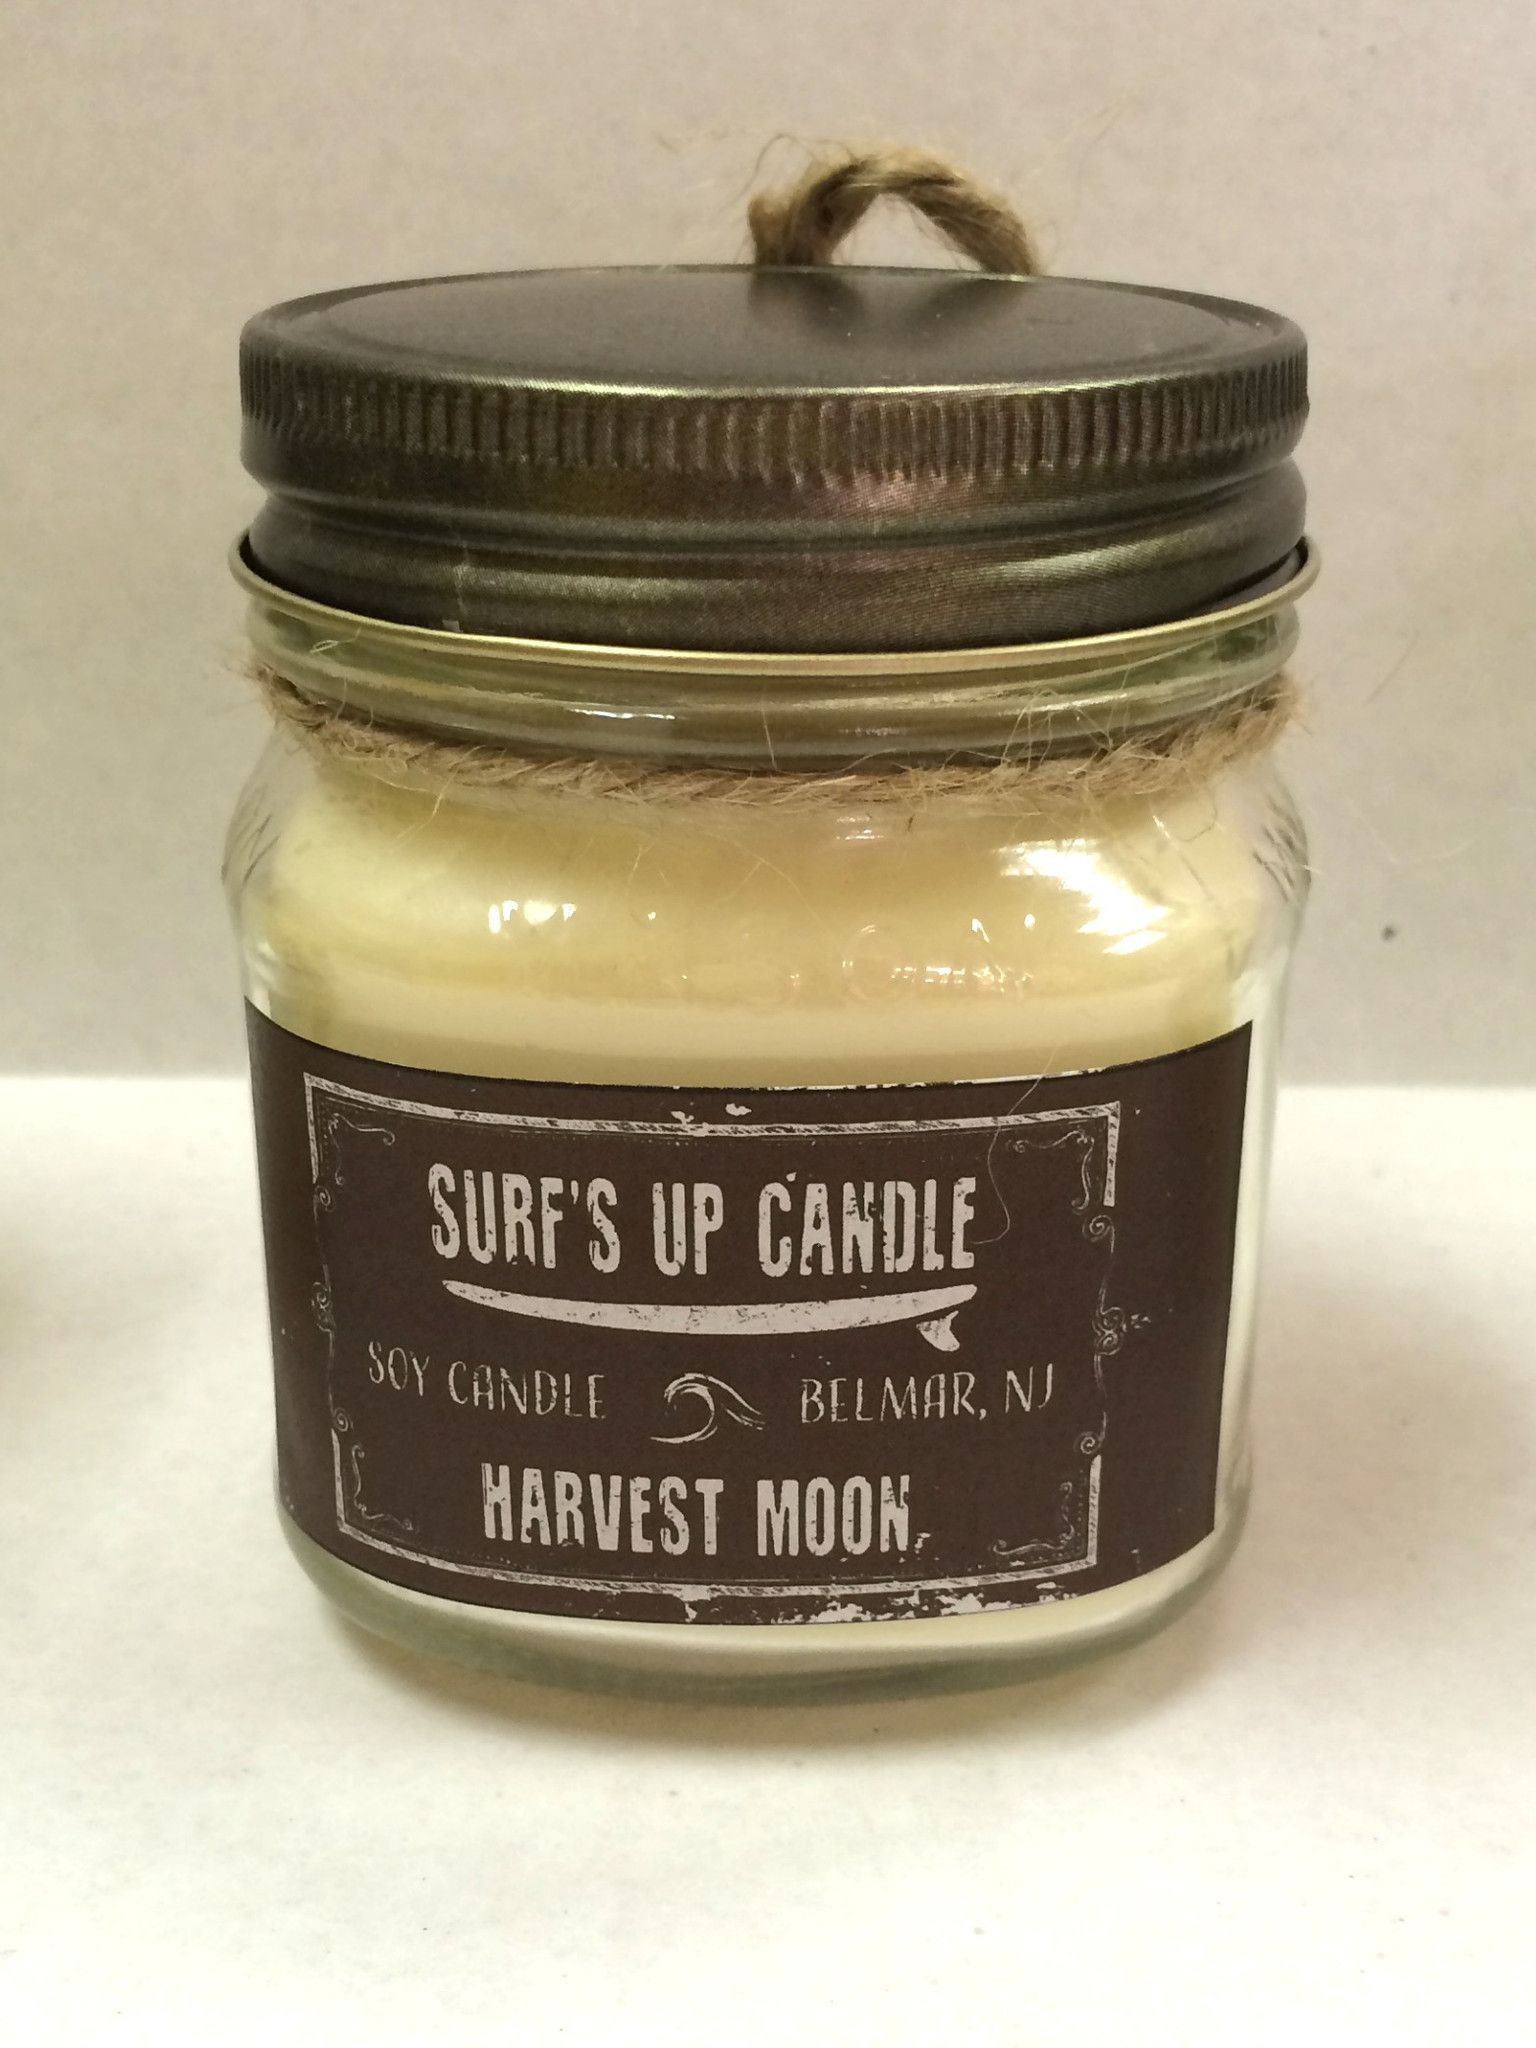 Harvest Moon Medium Scented Soy Candle,Mason Jar Candles,Natural Soy Candles,